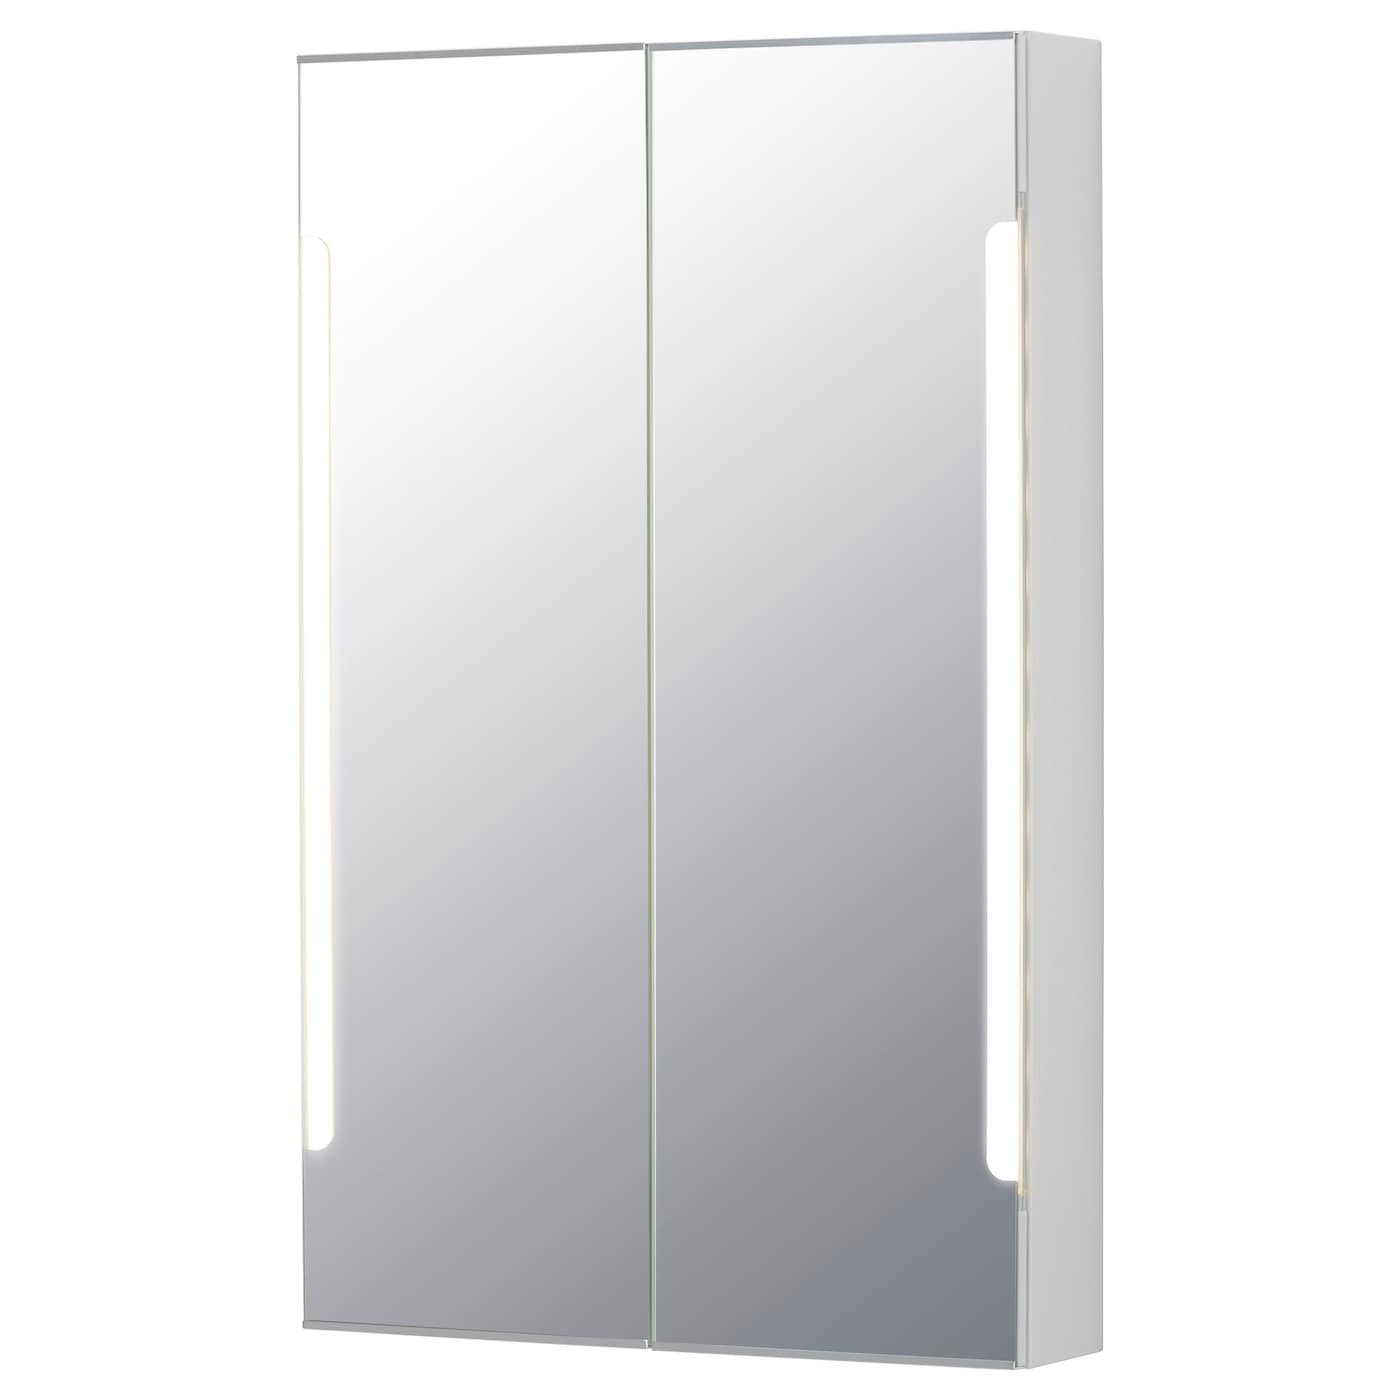 STORJORM Mirror cab 2 doorbuiltin lighting White